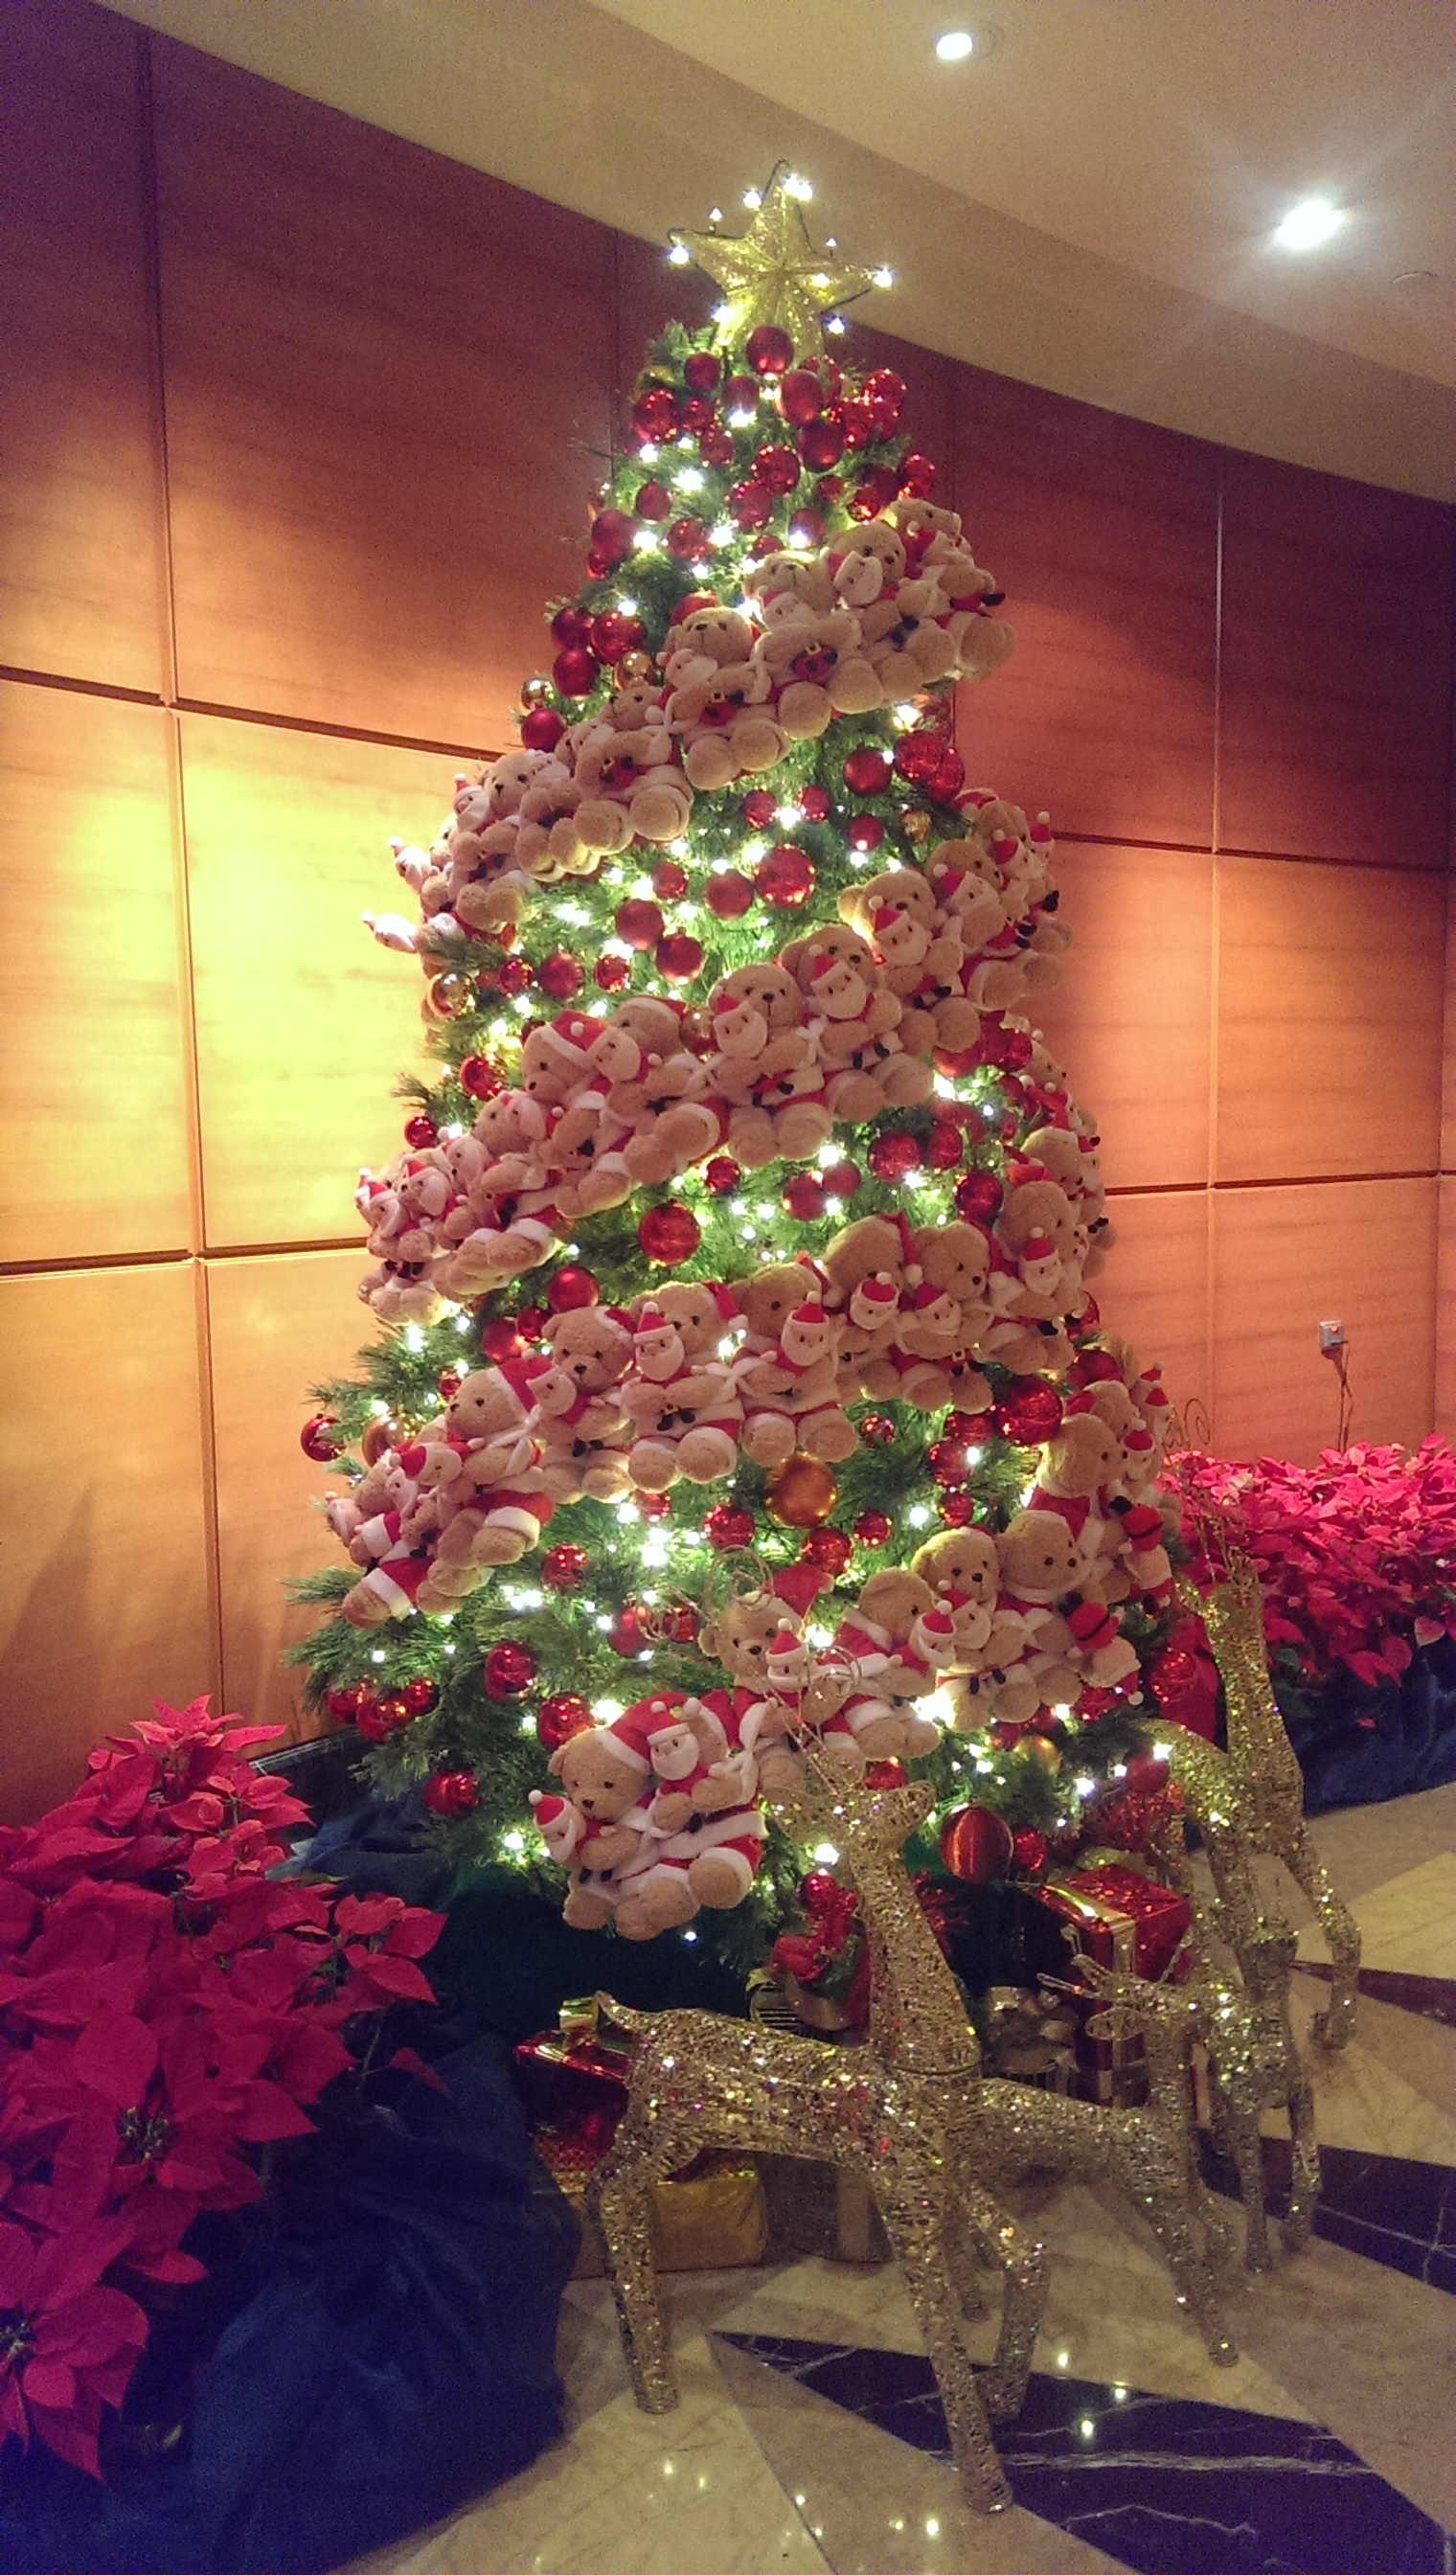 A Bearful Christmas Tree at Fullerton Hotel.